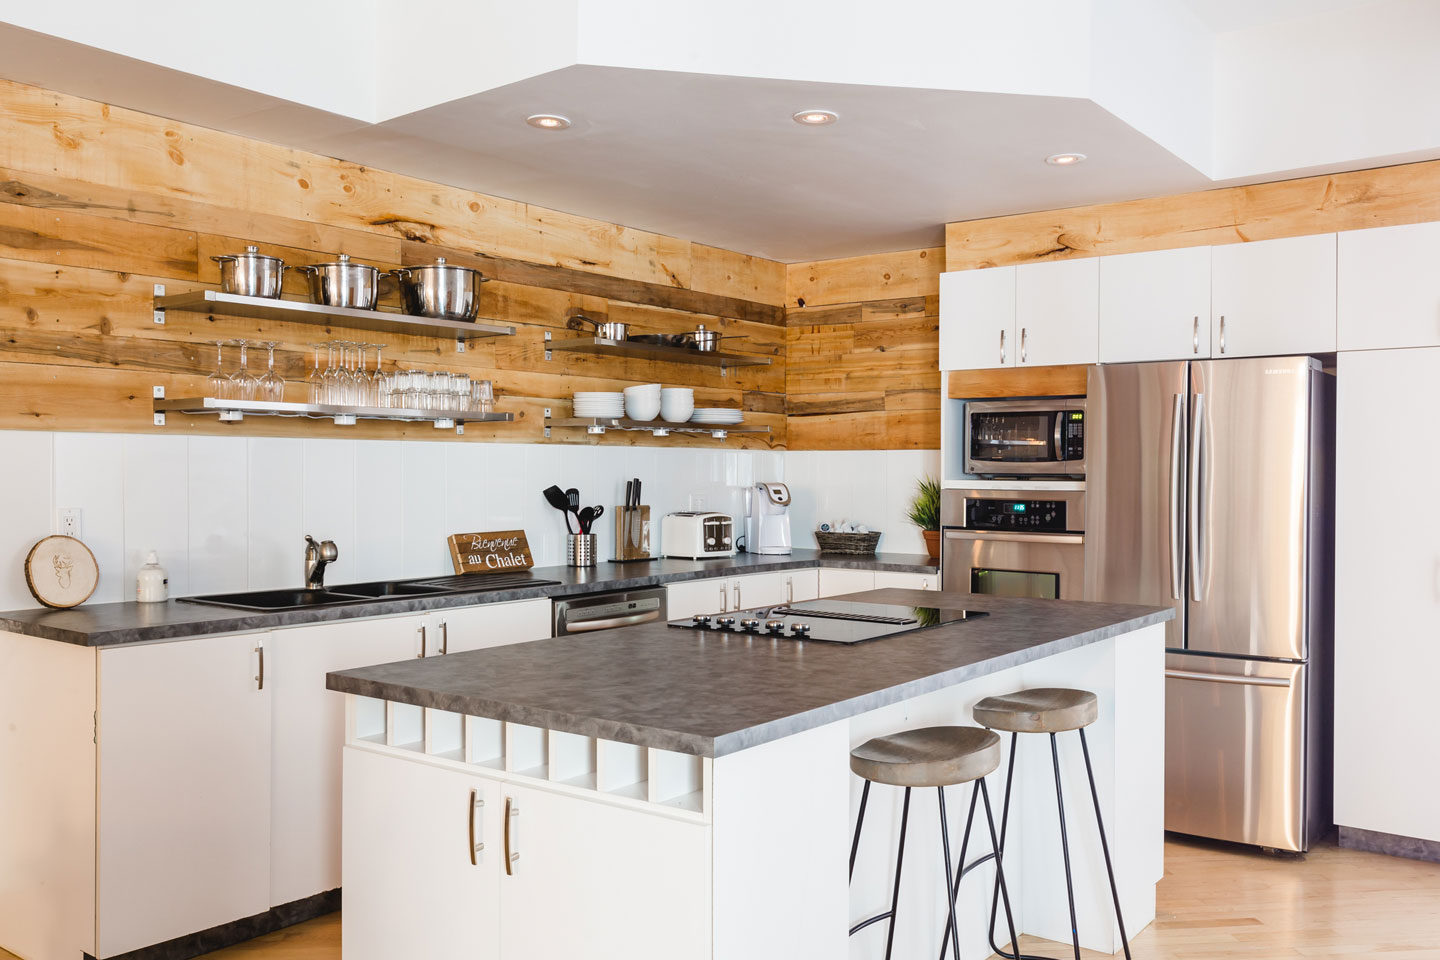 City chalet: fully equipped kitchen